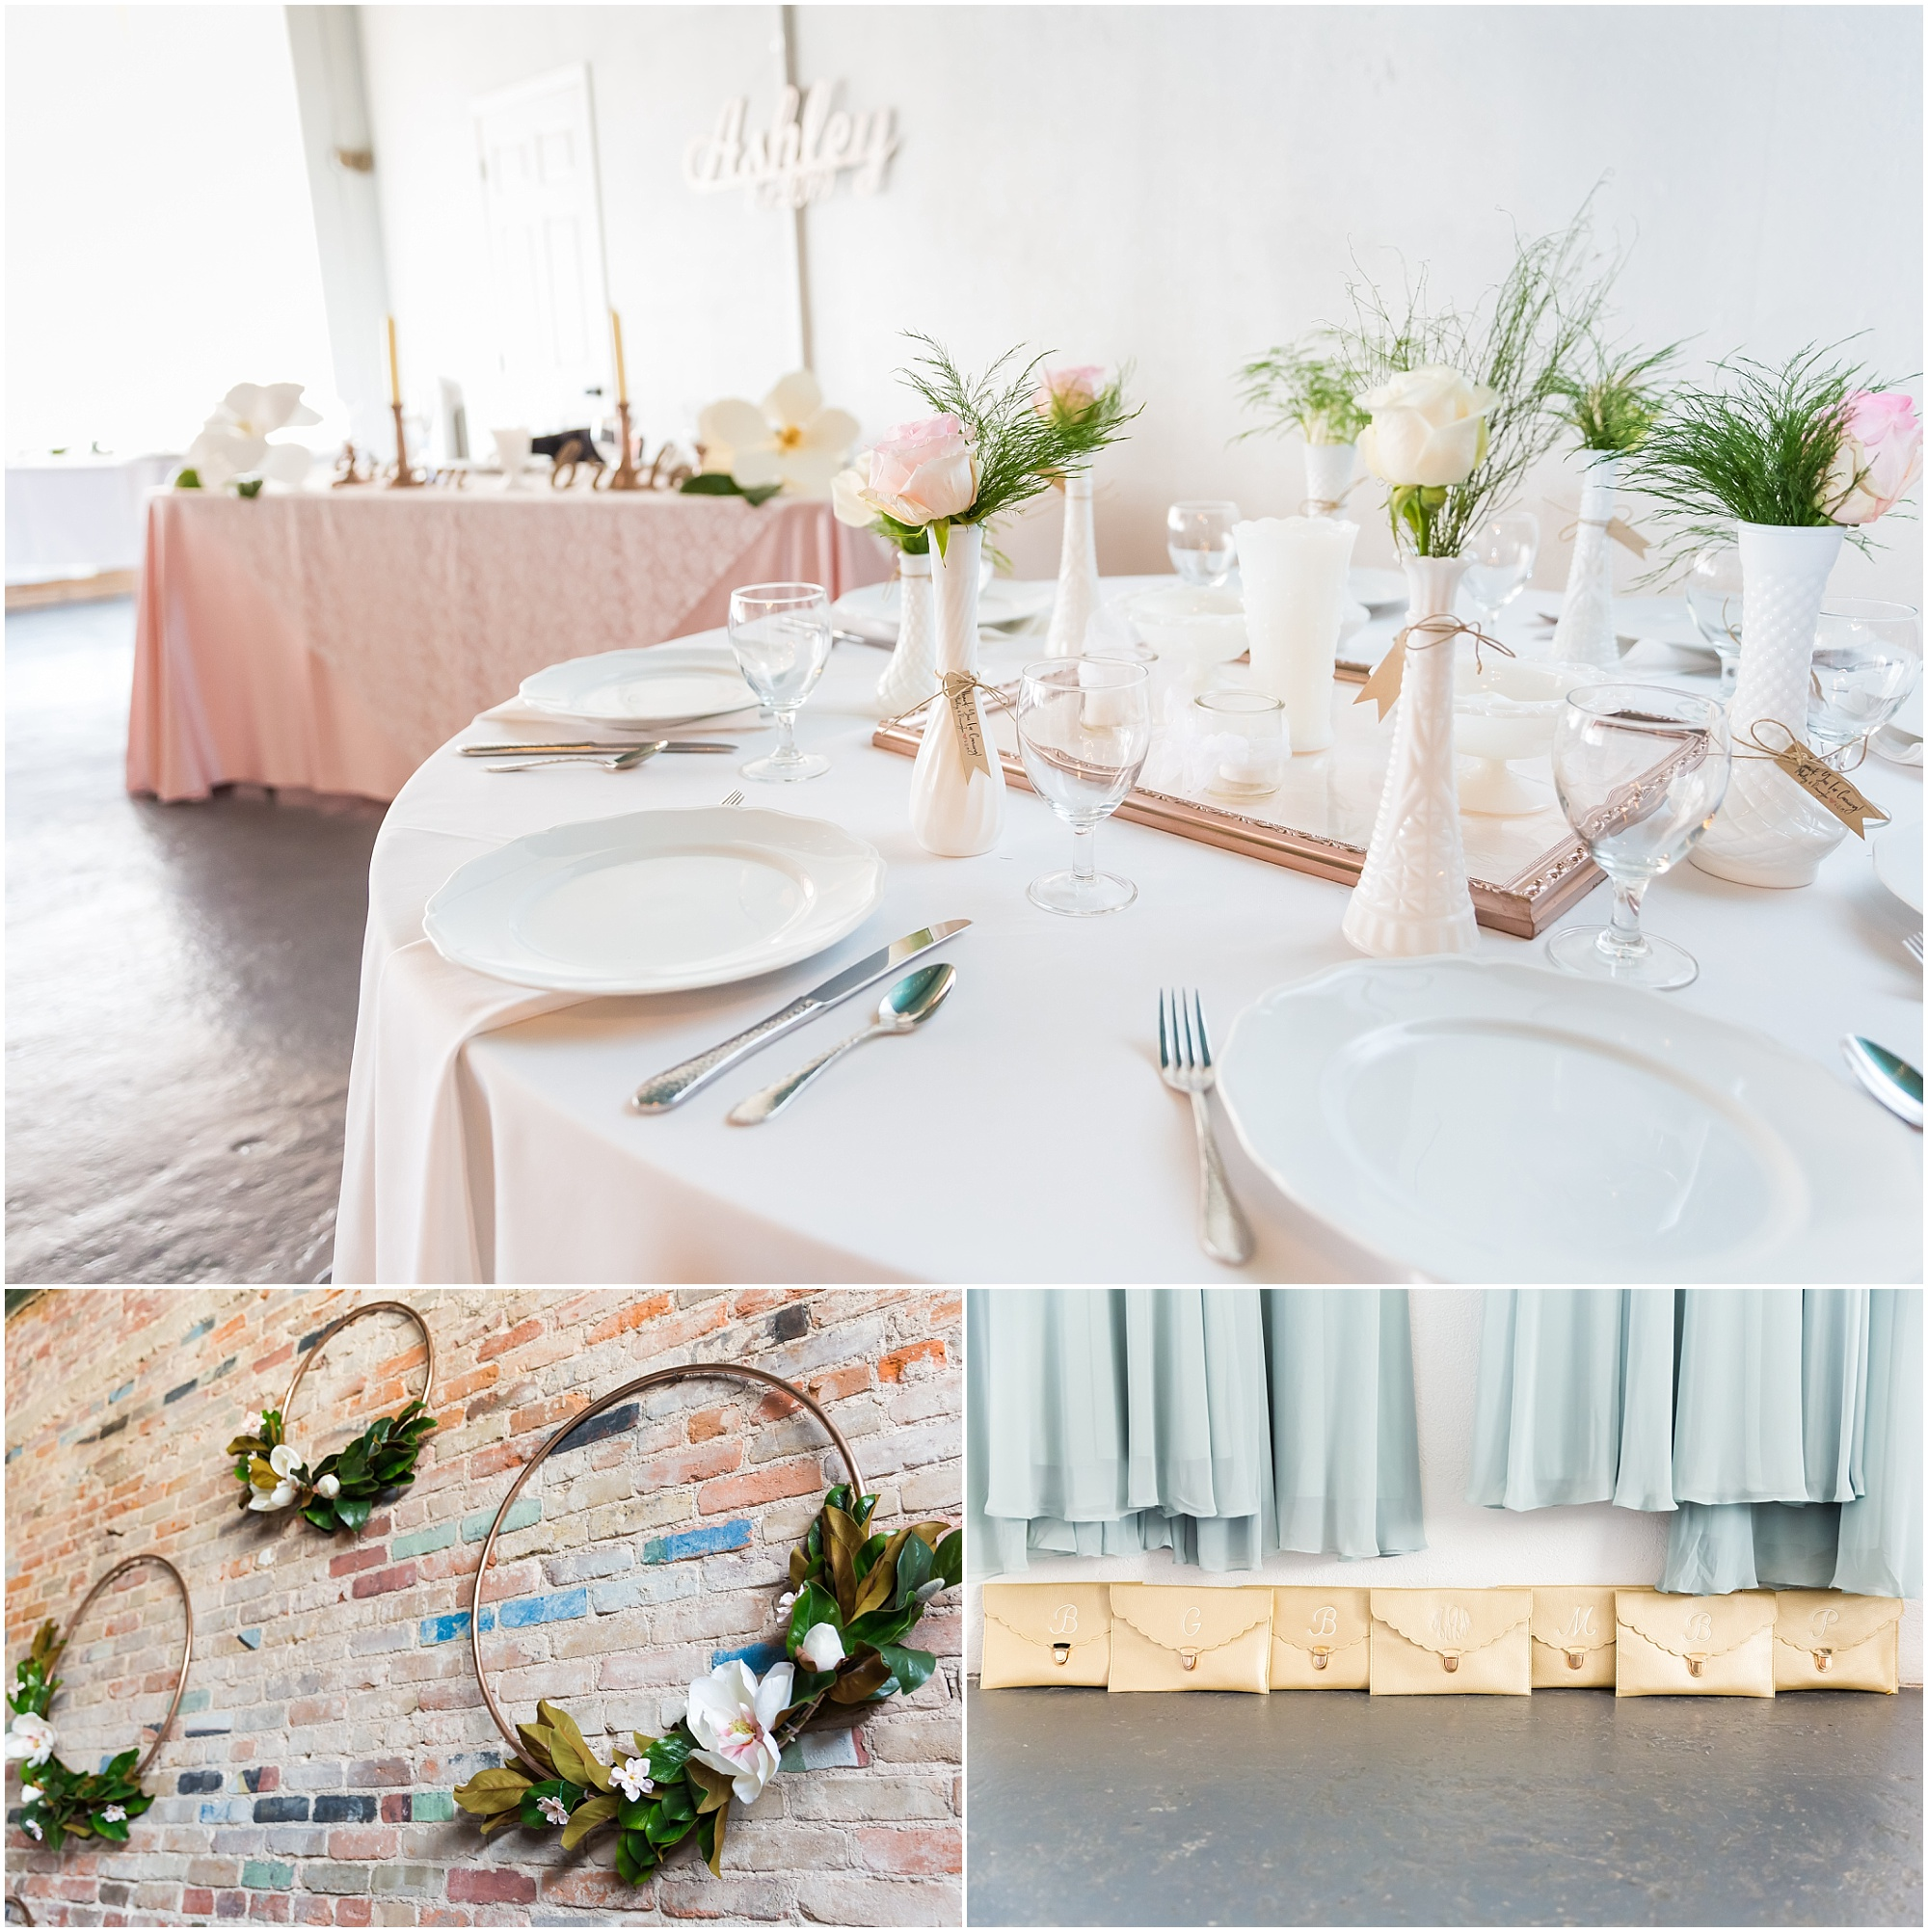 Blush linens with white and rose gold plates and centerpieces for reception seating, Gold circles adorned with magnolia blossoms and leaves hanging on a brick wall, and monogram gold clutches as part of the wedding details - Jason & Melaina Photography - www.jasonandmelaina.com